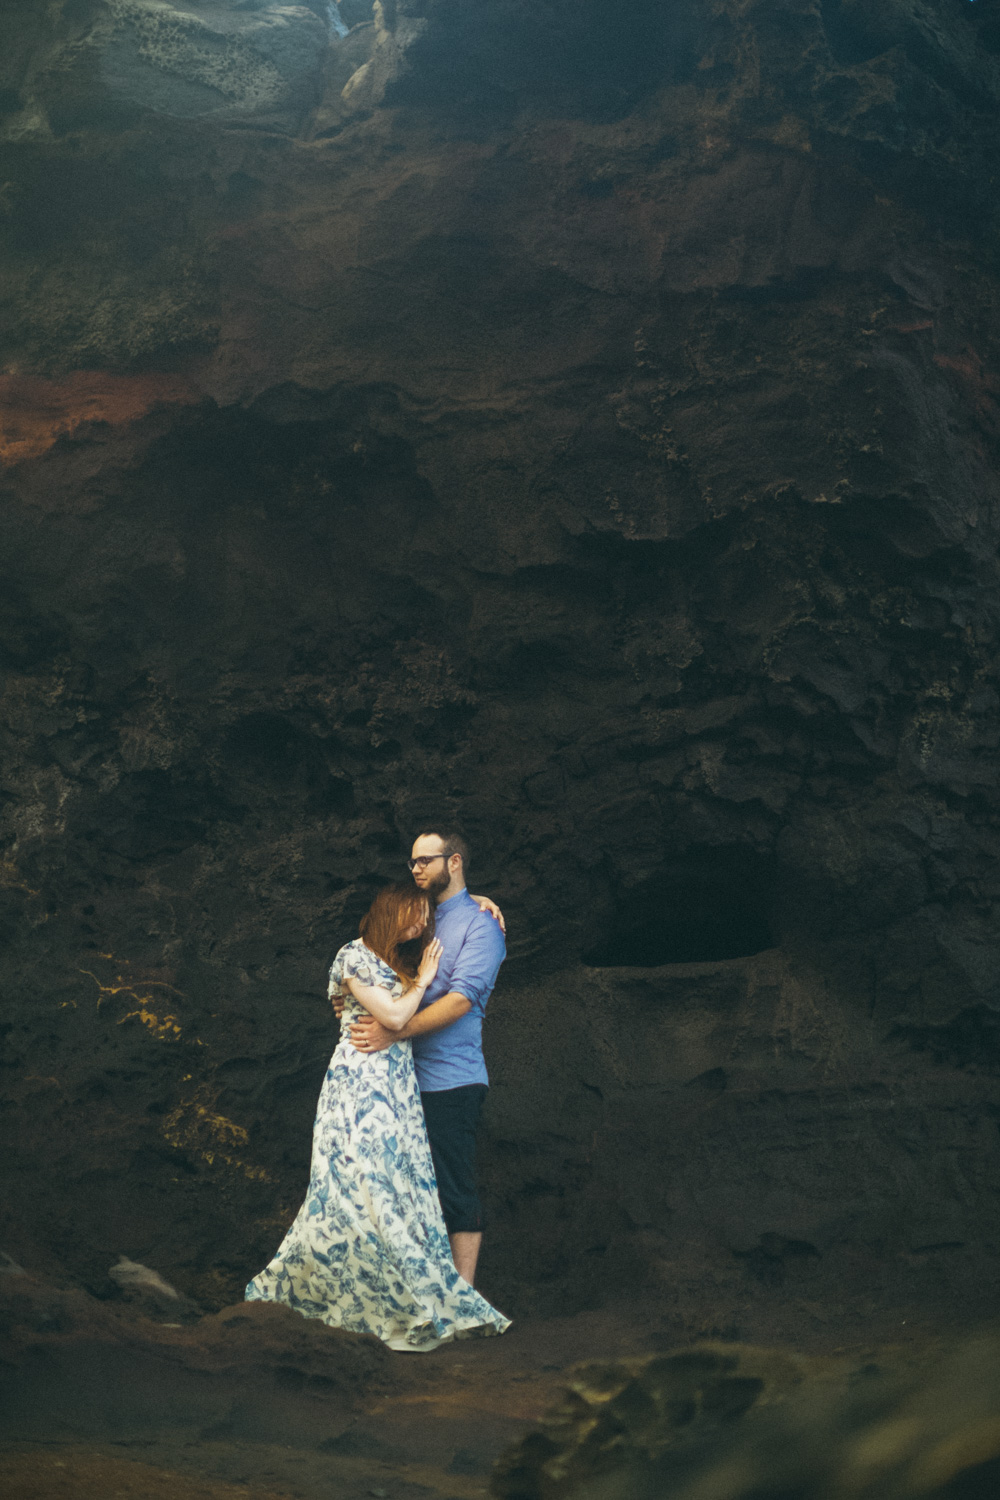 maui honeymoon portrait session_28.jpg